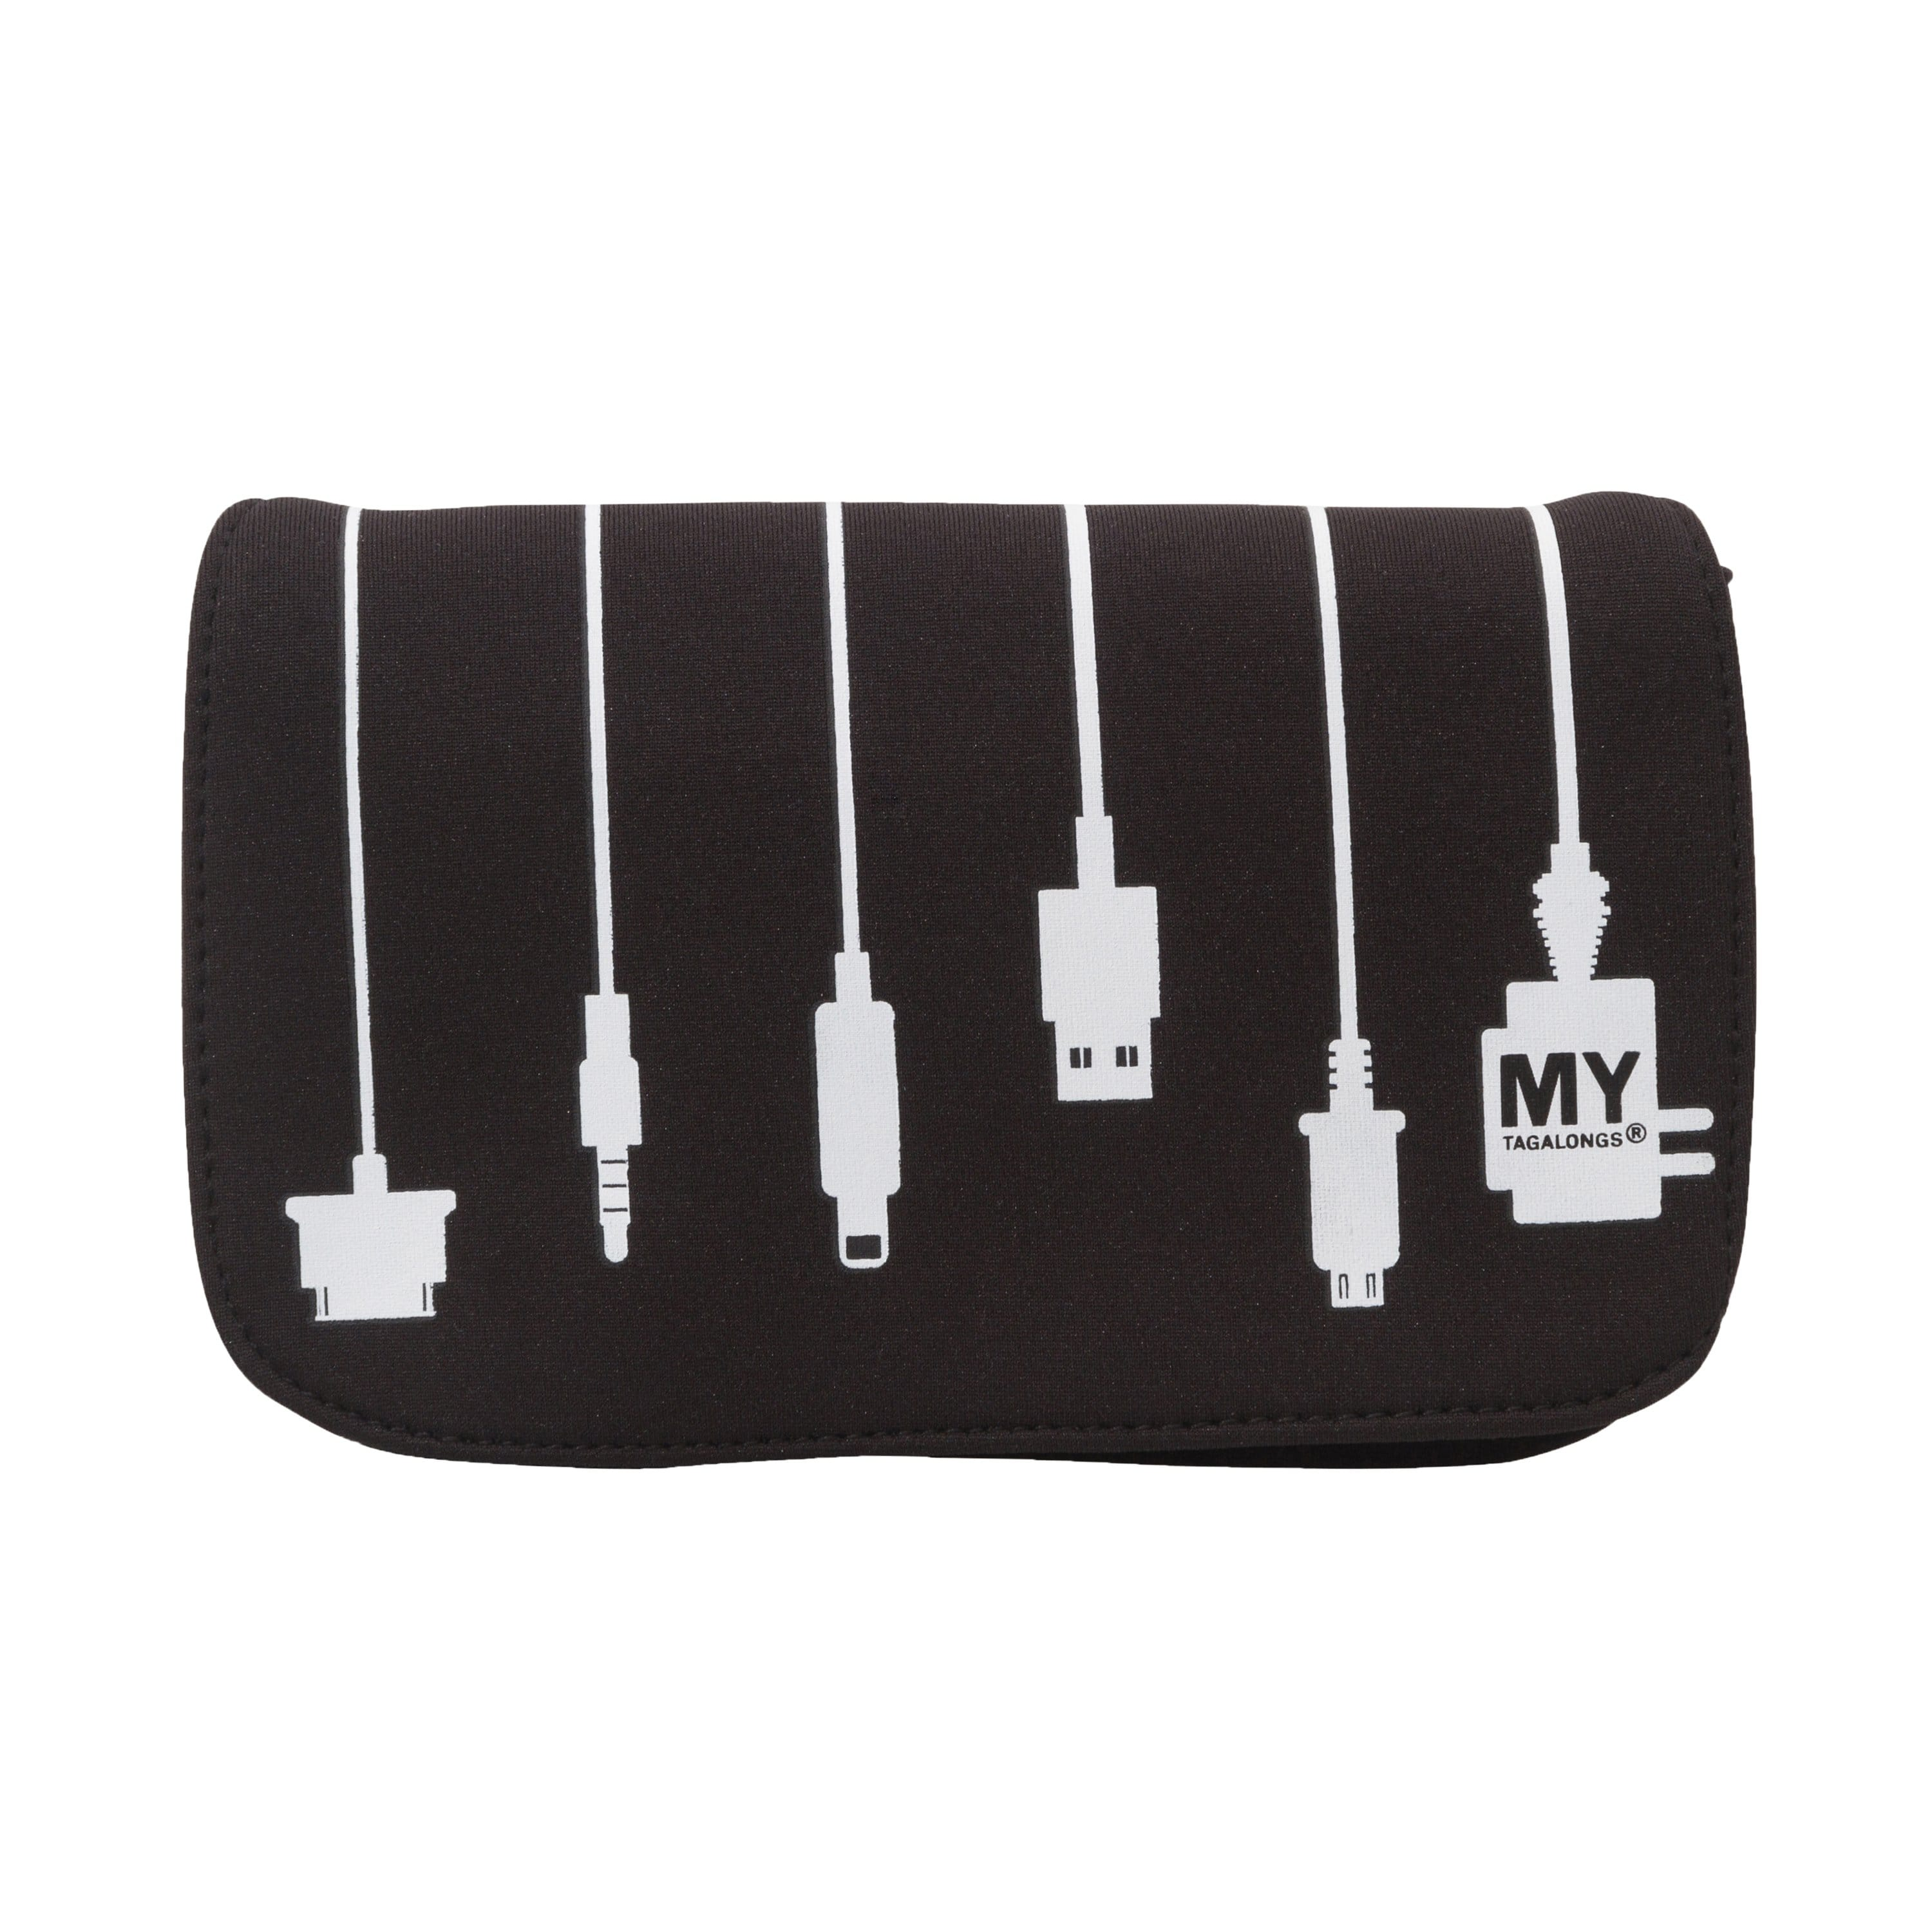 MyTagAlongs BLACK / N/S Mytagalongs Plug In Charger Case